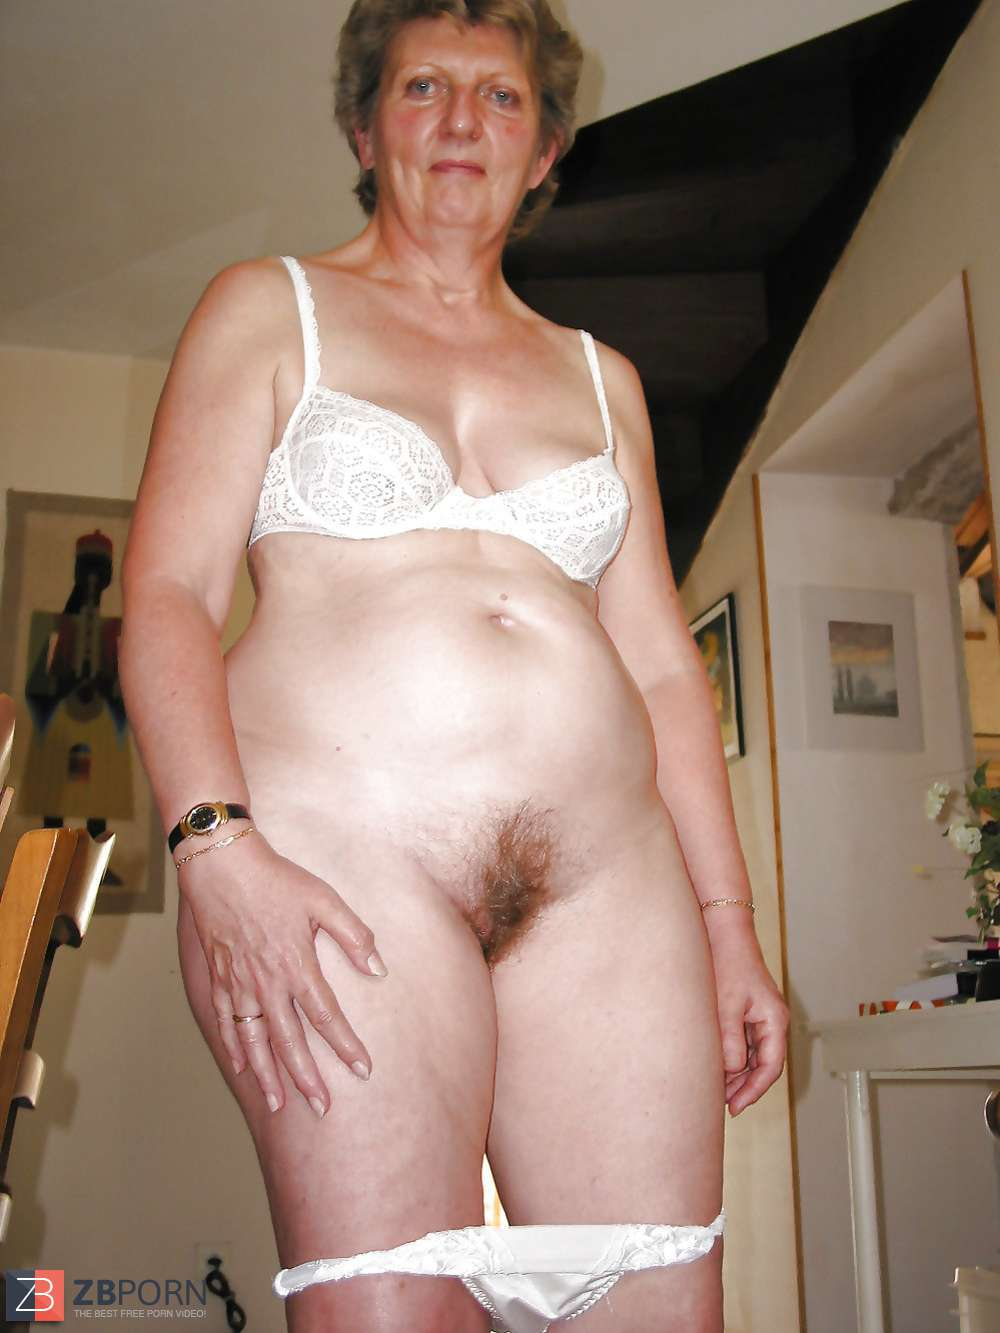 Older women nude free are absolutely